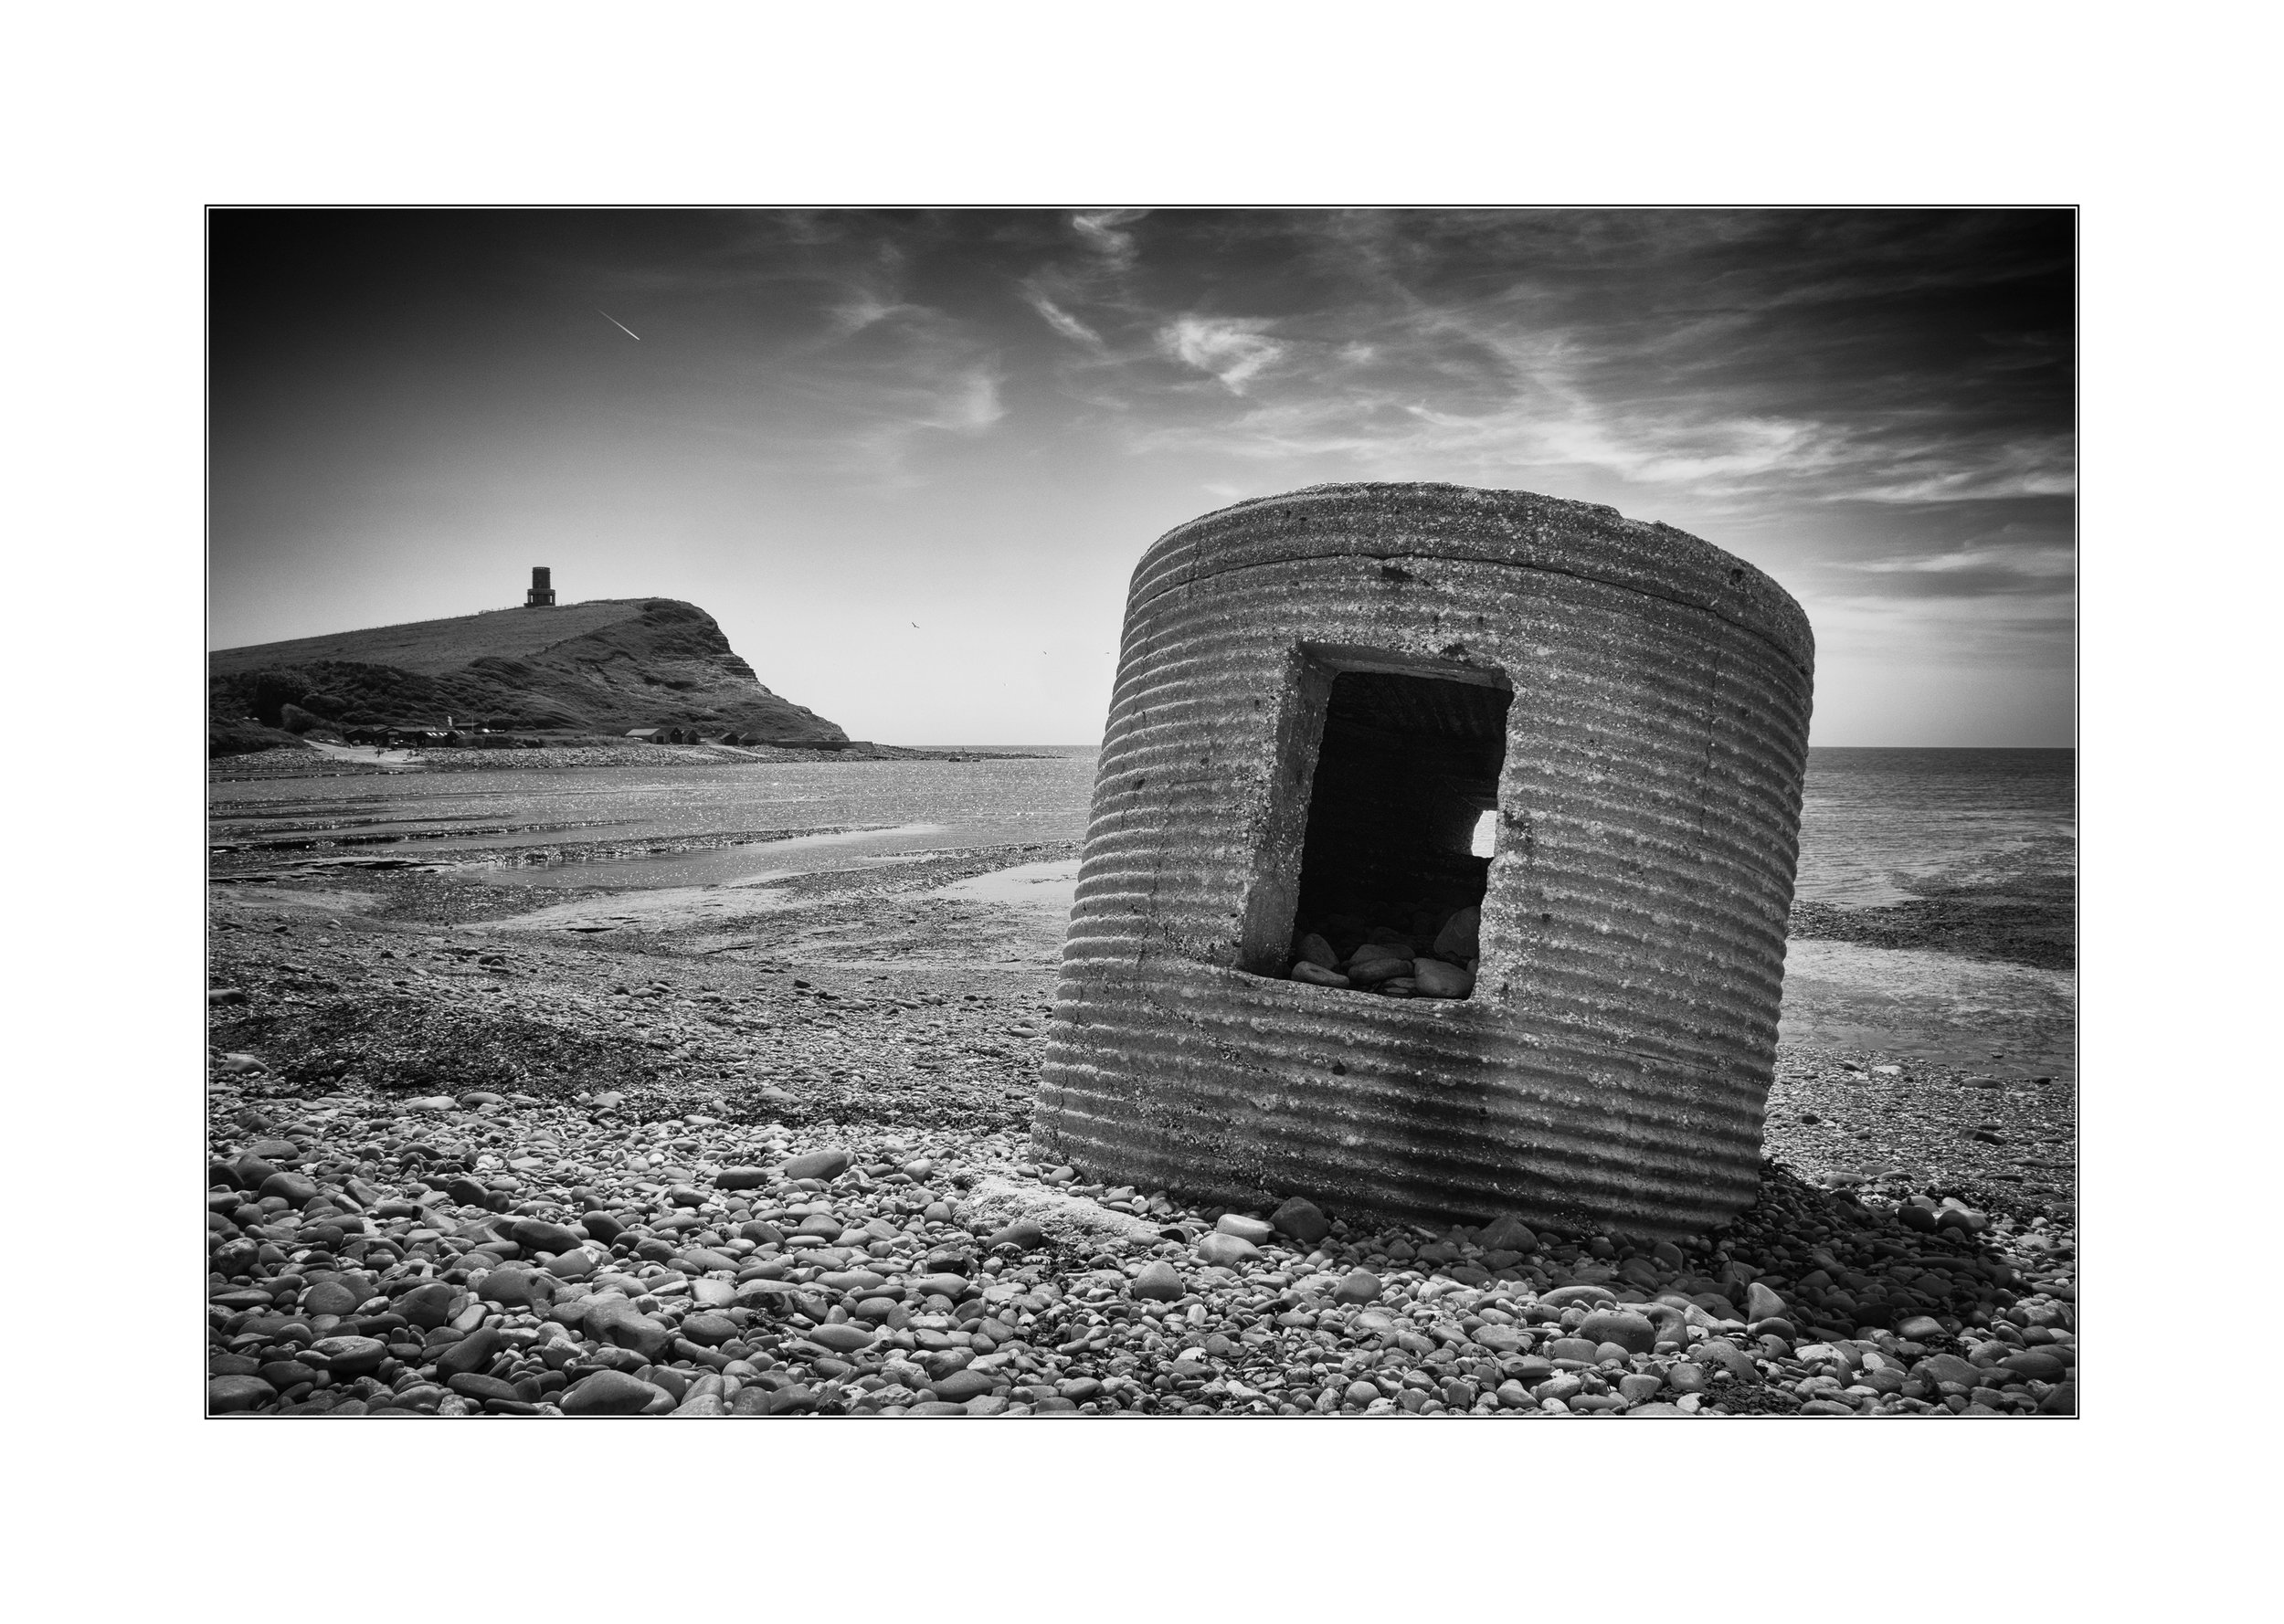 Pillbox on beach - By Phil Dean